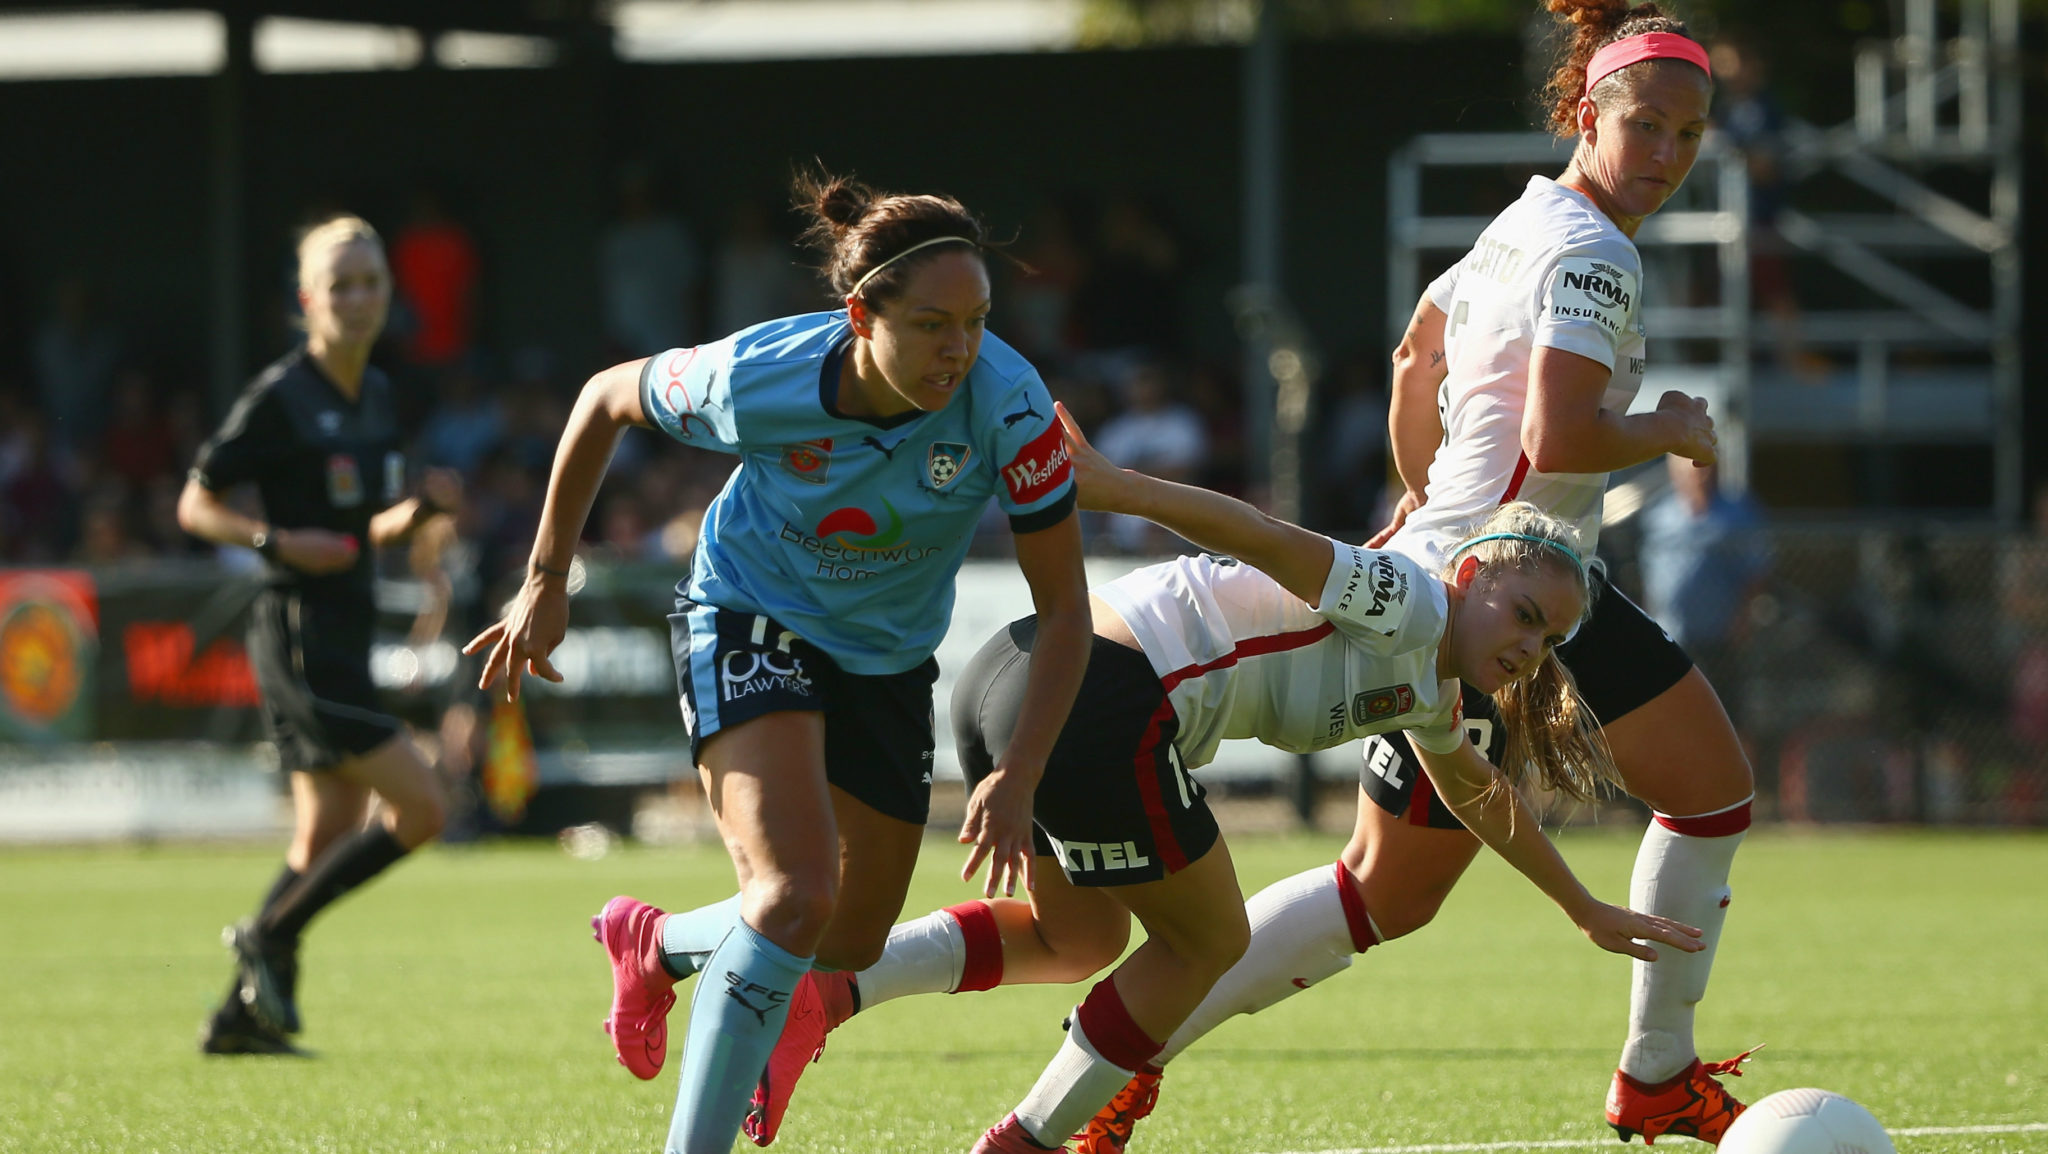 The Westfield W-League's Sydney derby ended in a draw this weekend. (Photo: Westfield W-League)